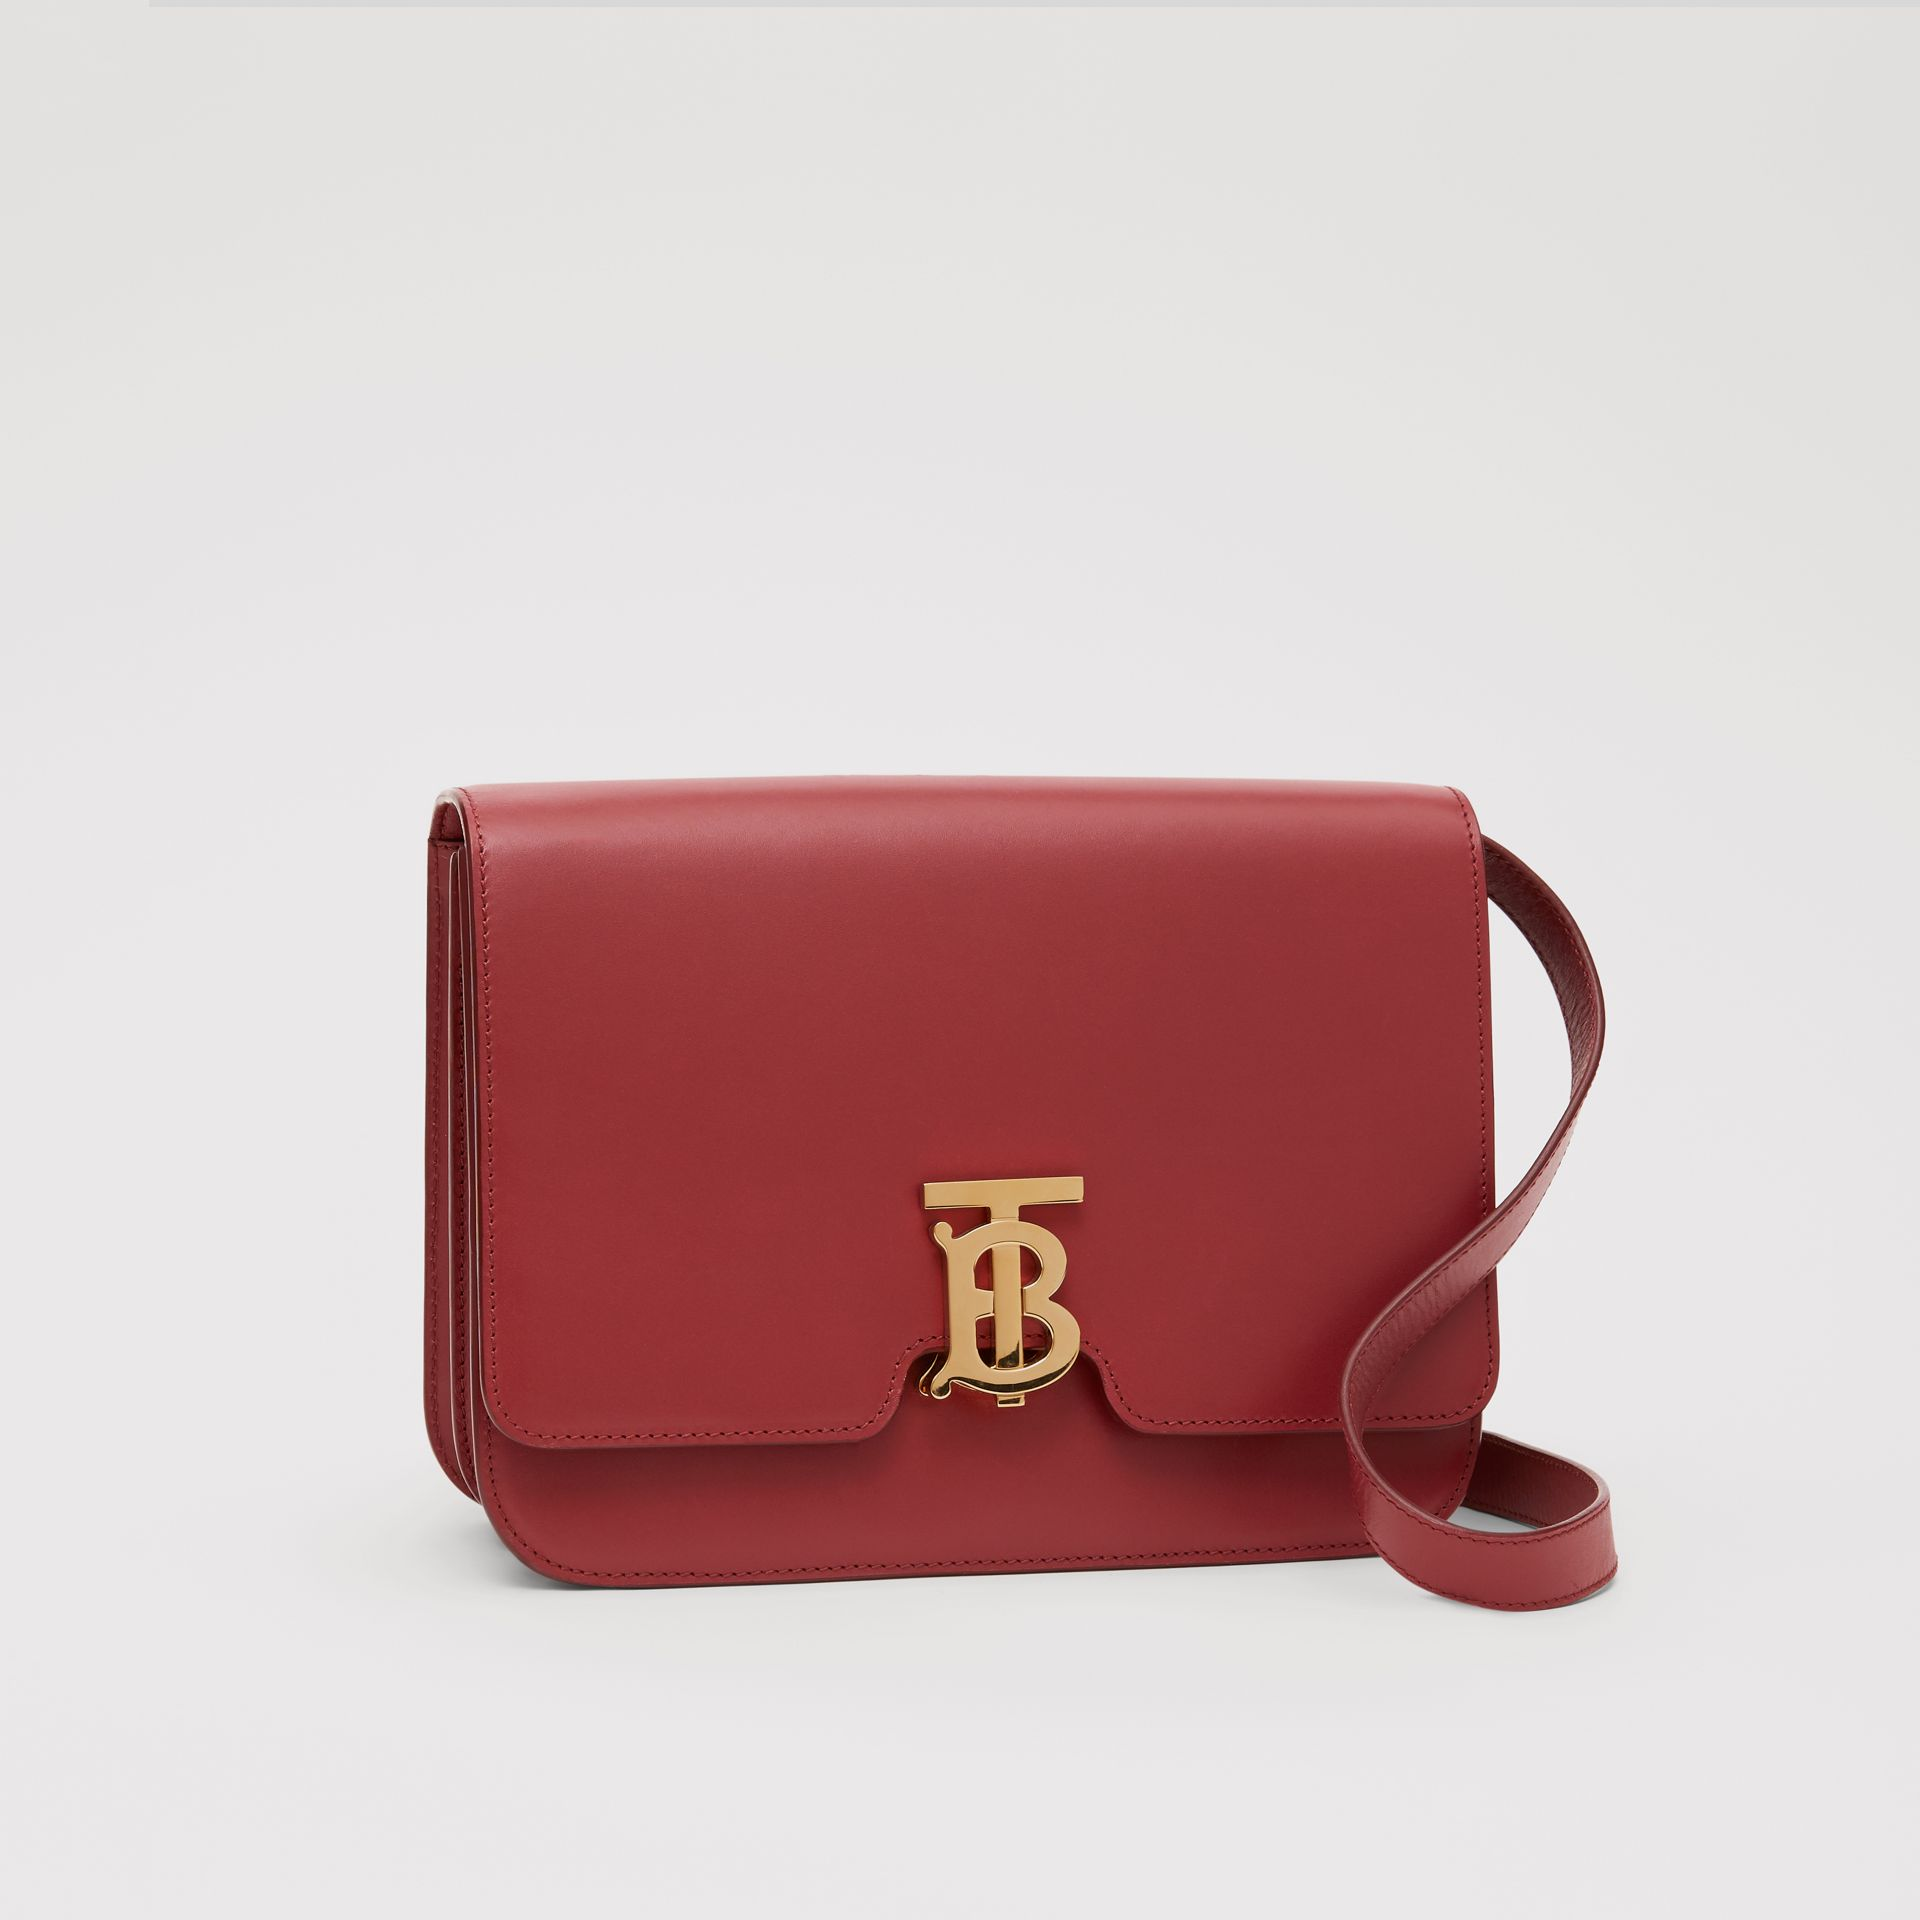 Medium Leather TB Bag in Crimson - Women | Burberry Hong Kong - gallery image 6